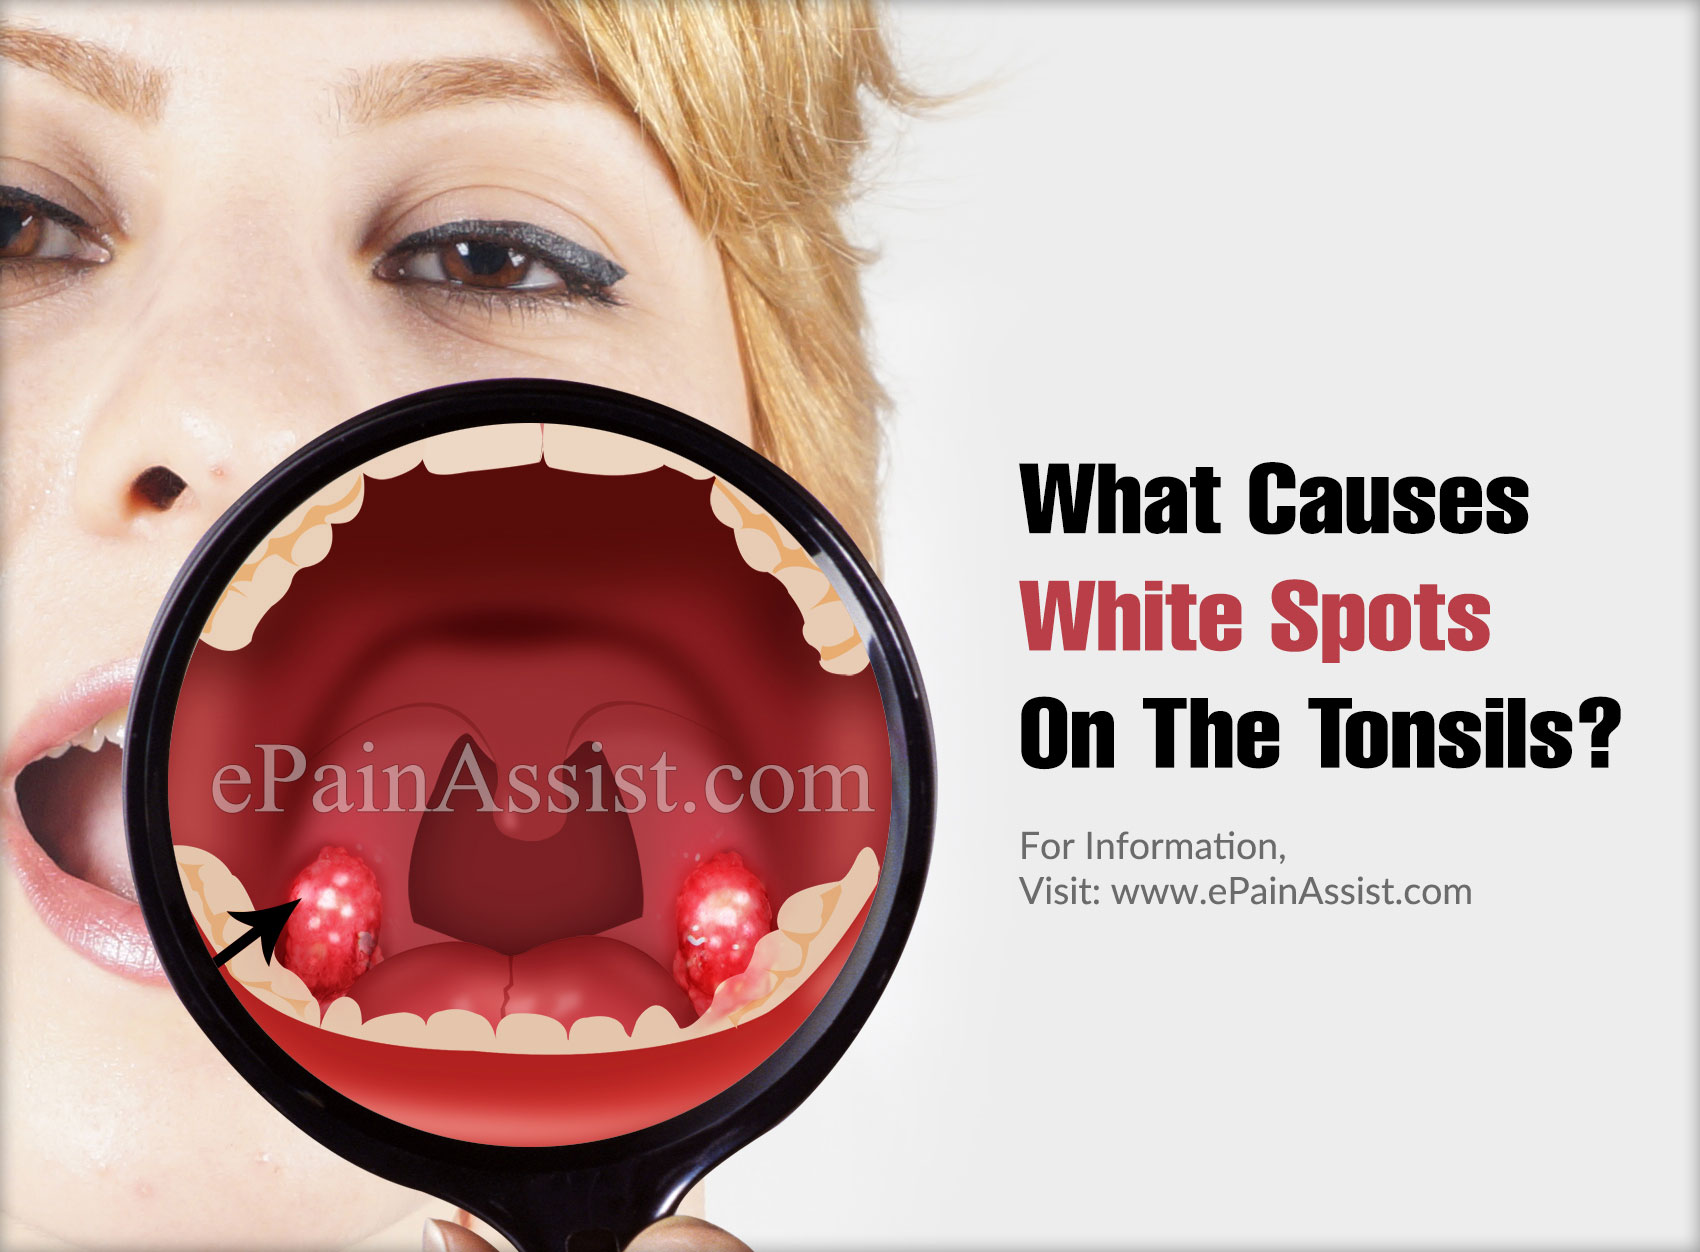 What Causes White Spots On The Tonsils?